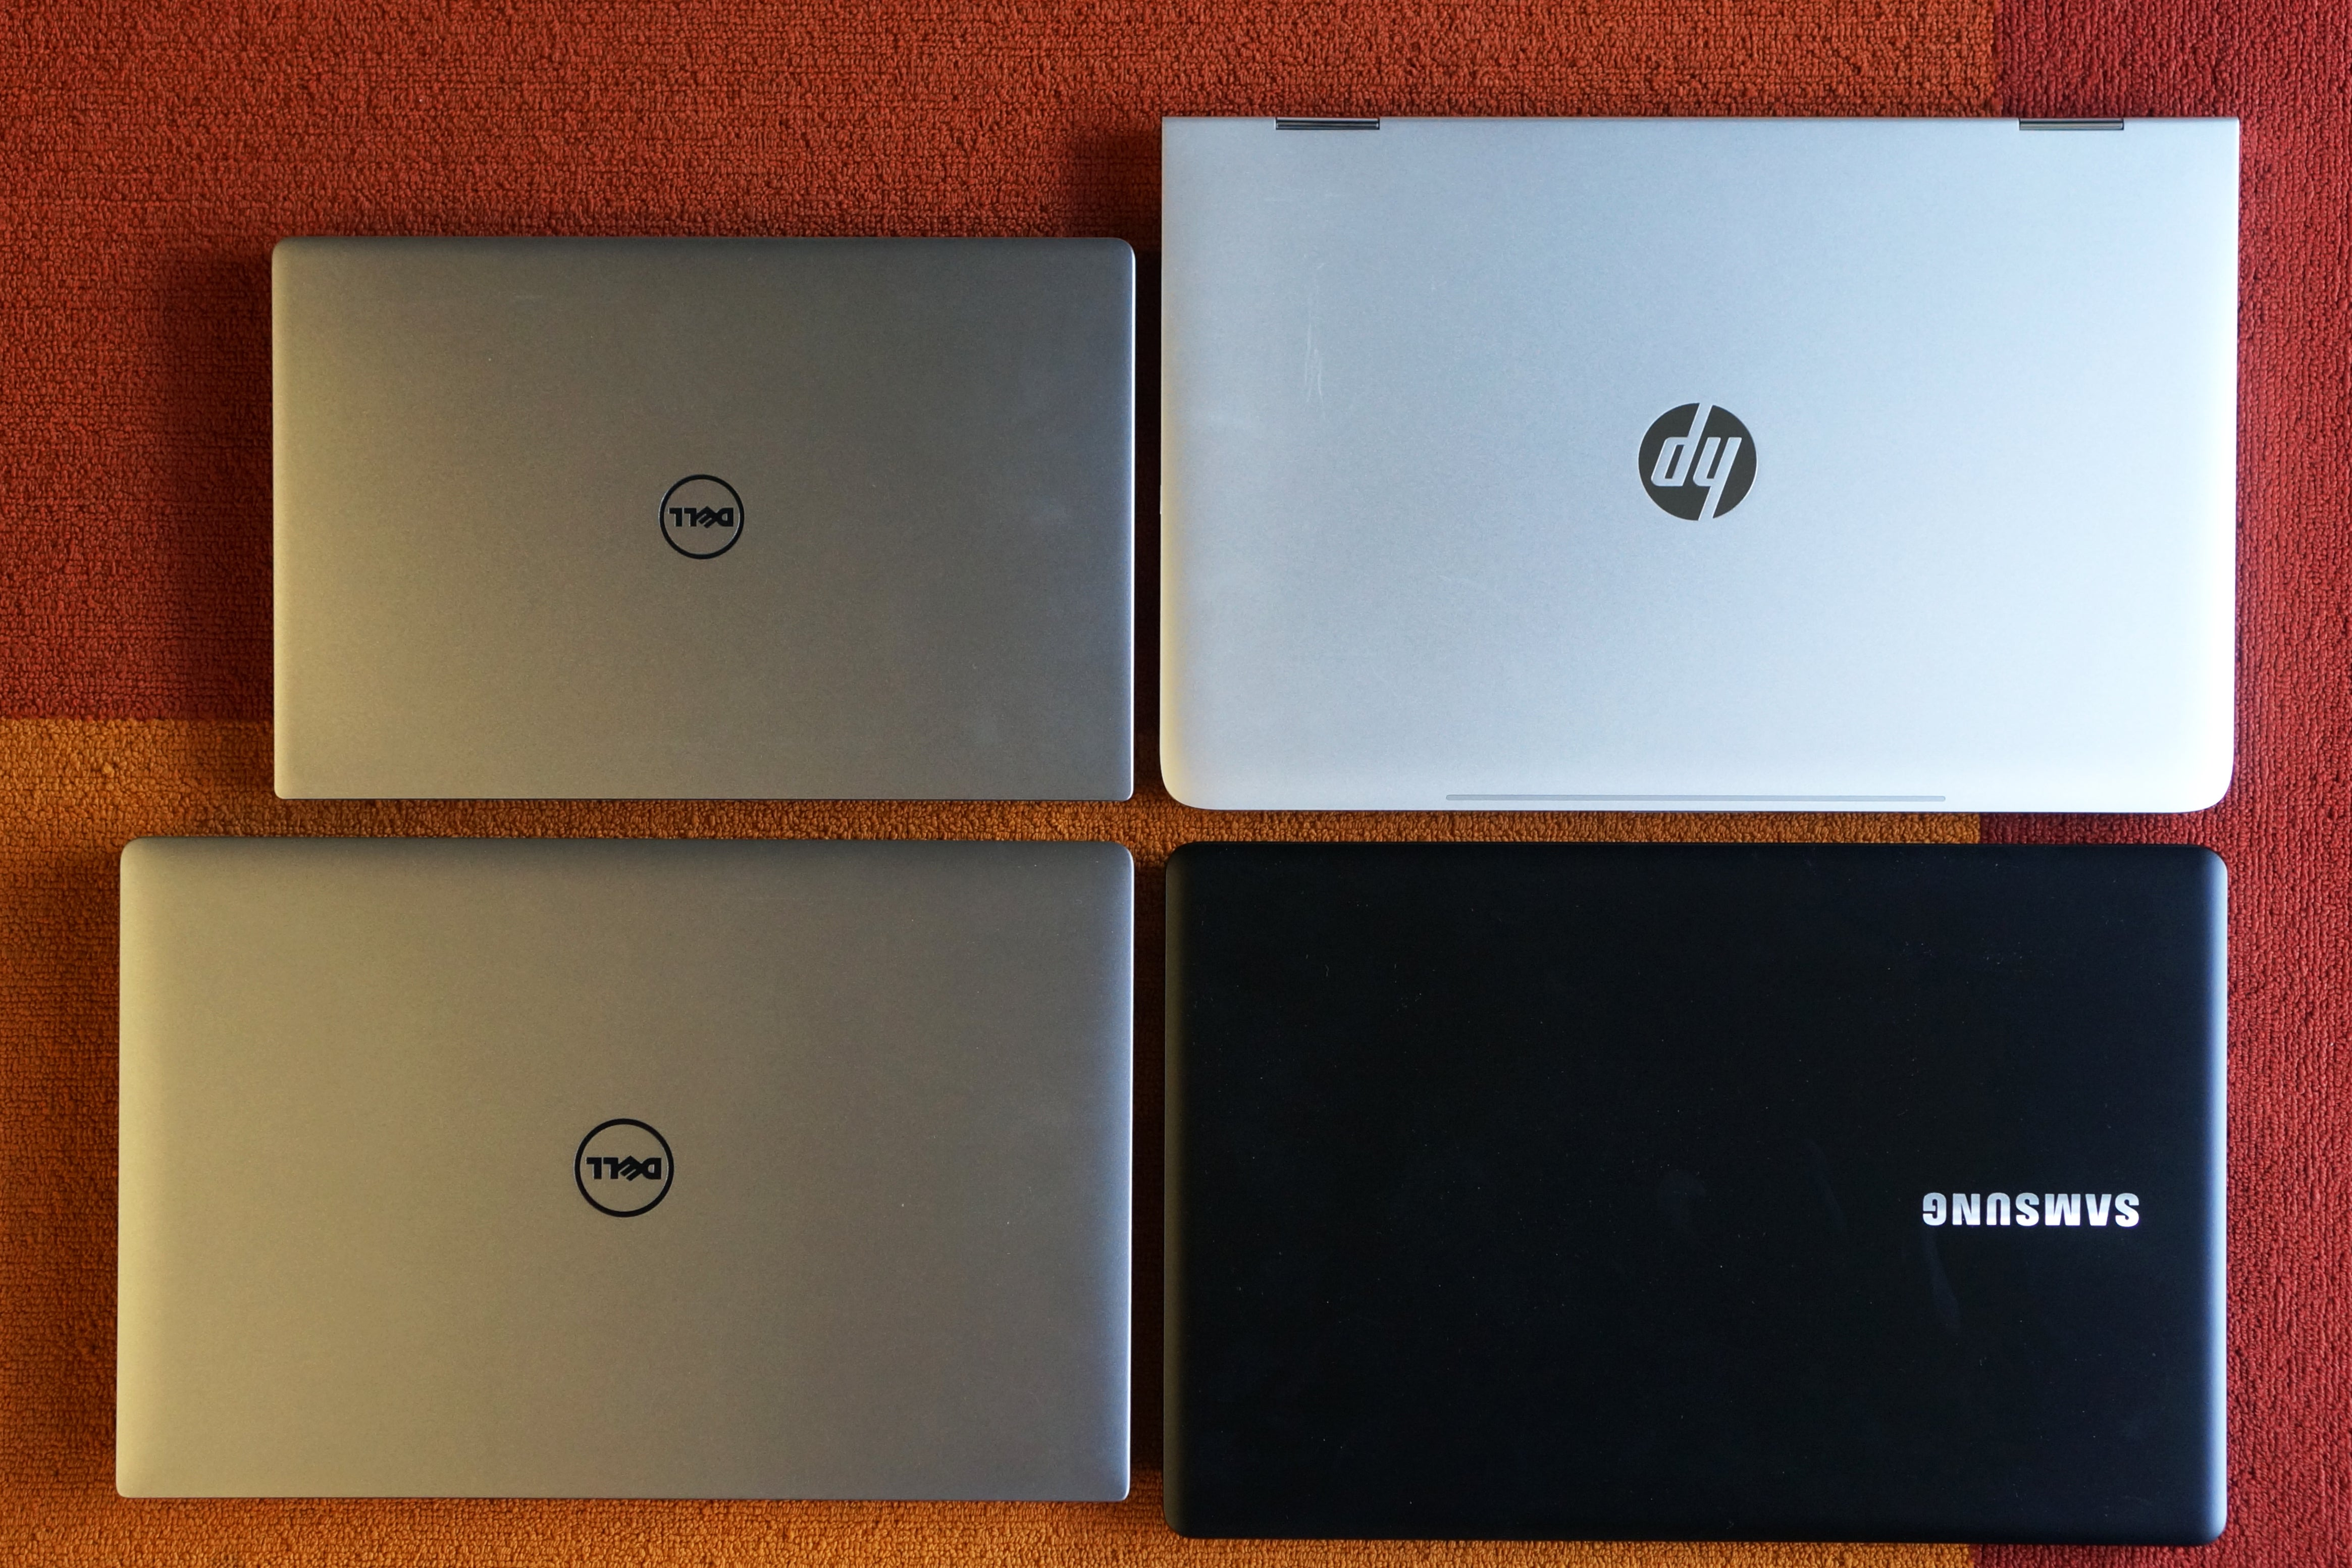 Which is better hp, dell or asus?